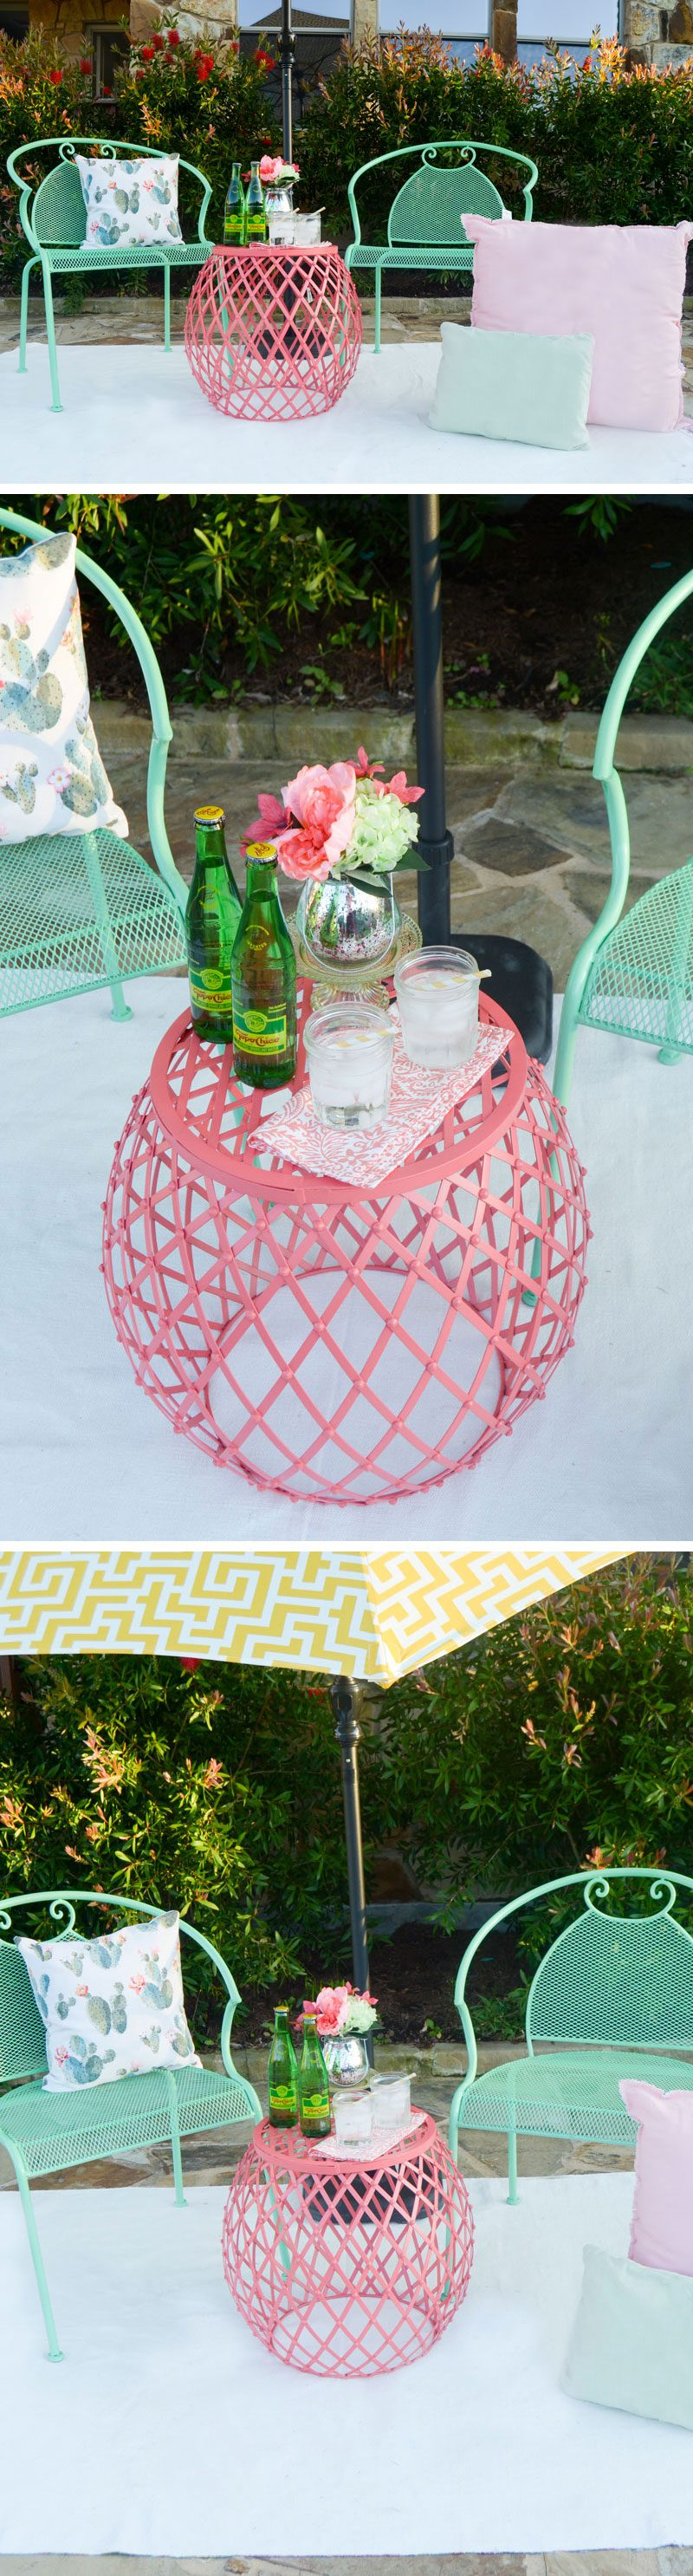 Outdoor Entertaining Ideas by Lindi Haws of Love The Day